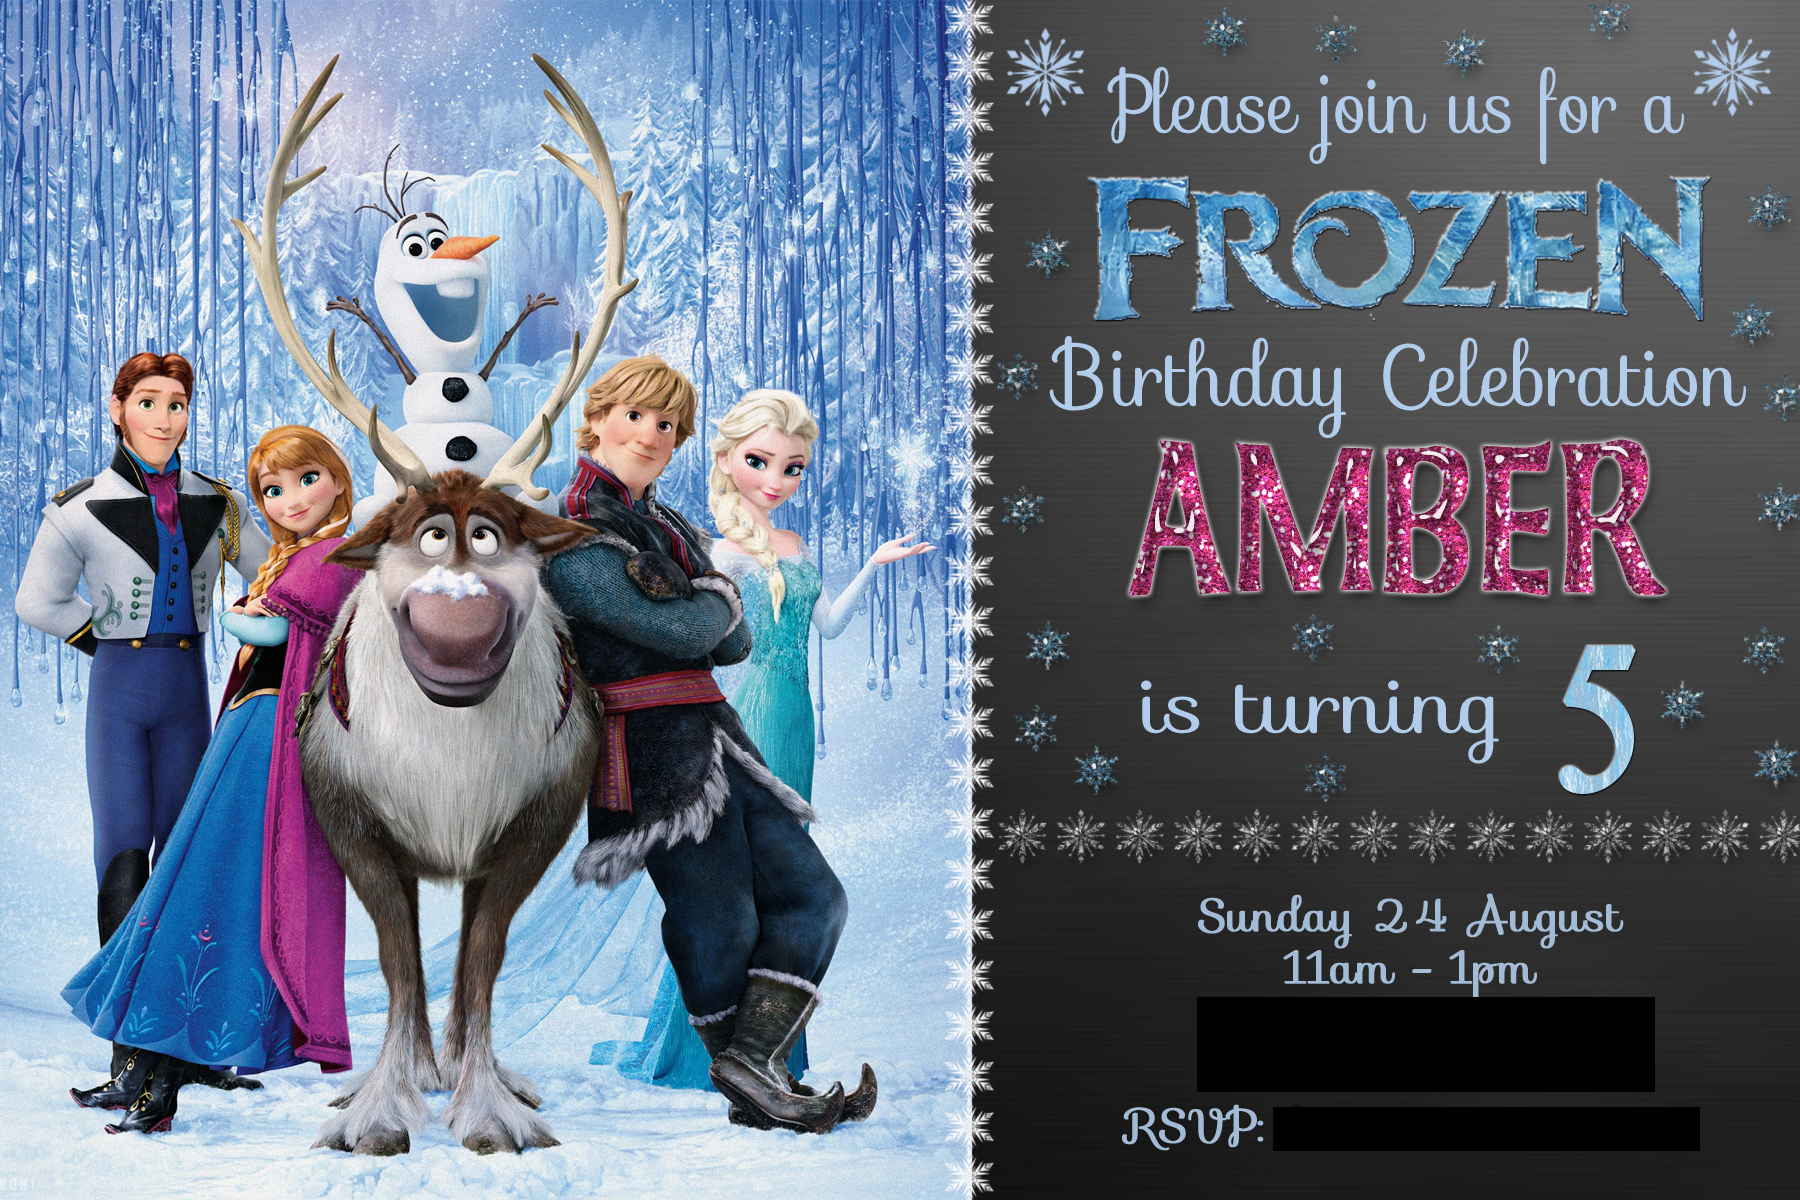 Etsy Frozen Invites - Free Printable Invitation Design Ideas by Adeh ...